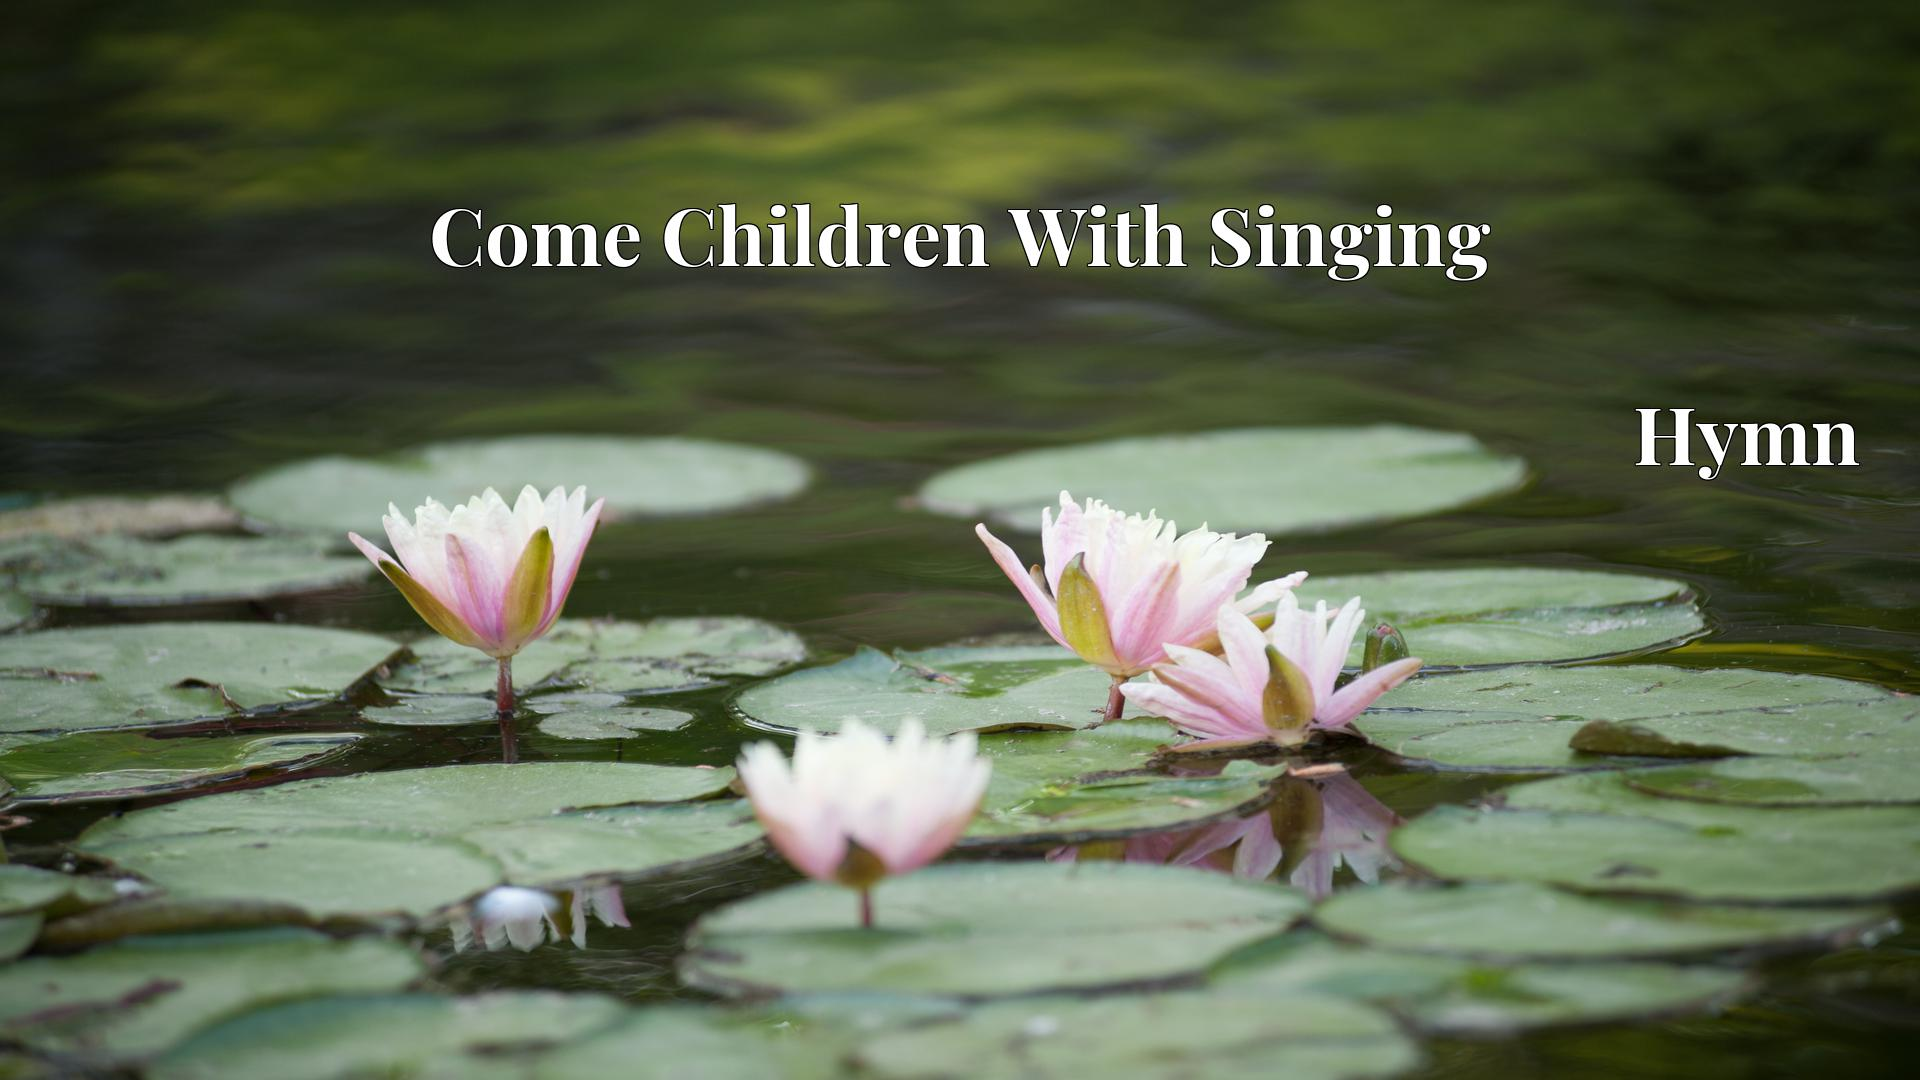 Come Children With Singing - Hymn